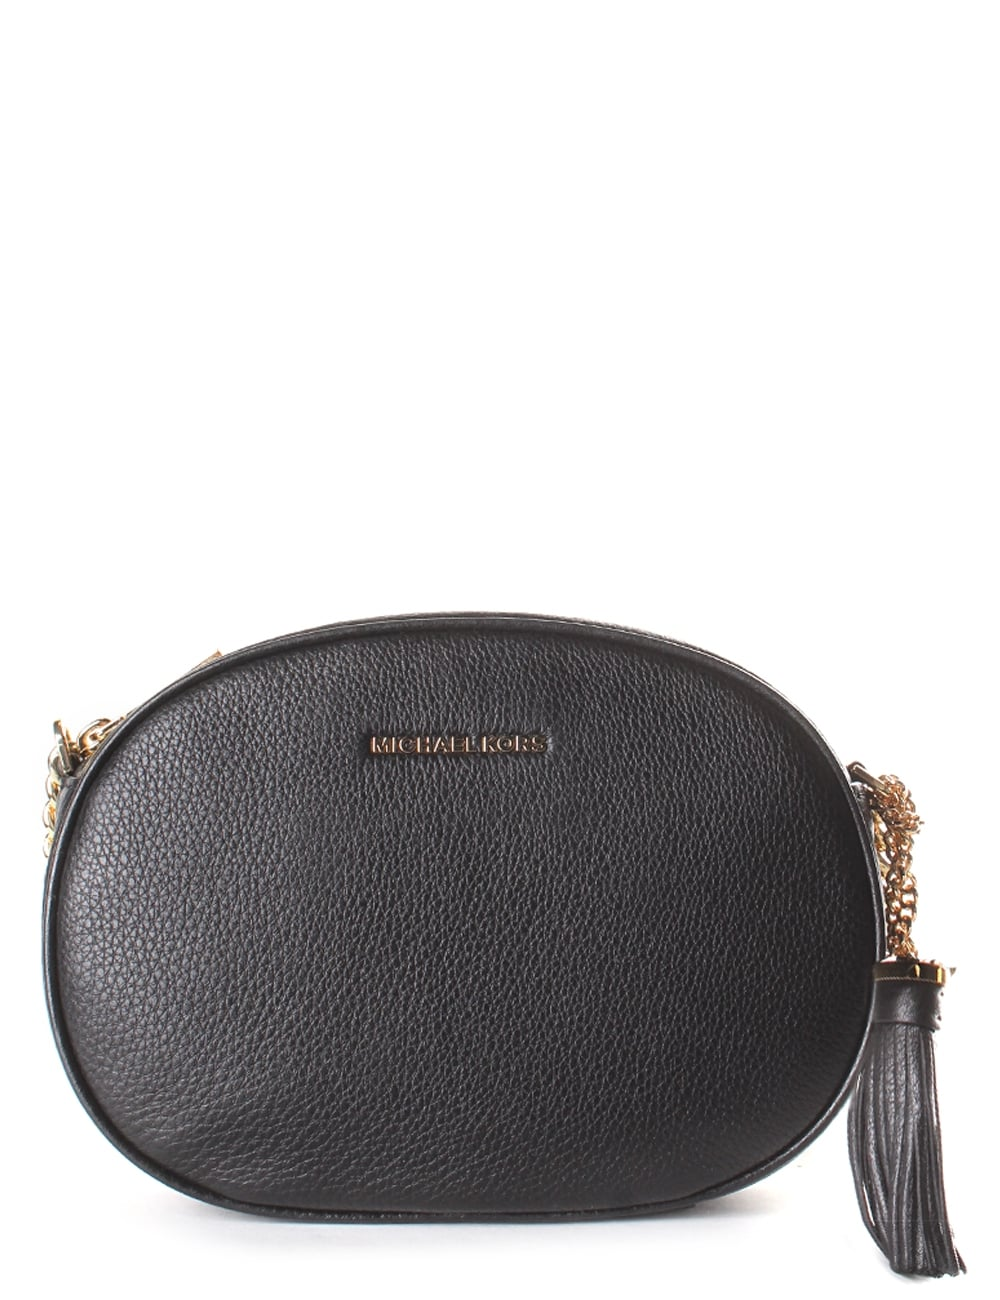 michael-kors-ginny-womens-medium-messenger-bag-p89800-501607 image.jpg d980b9fdef